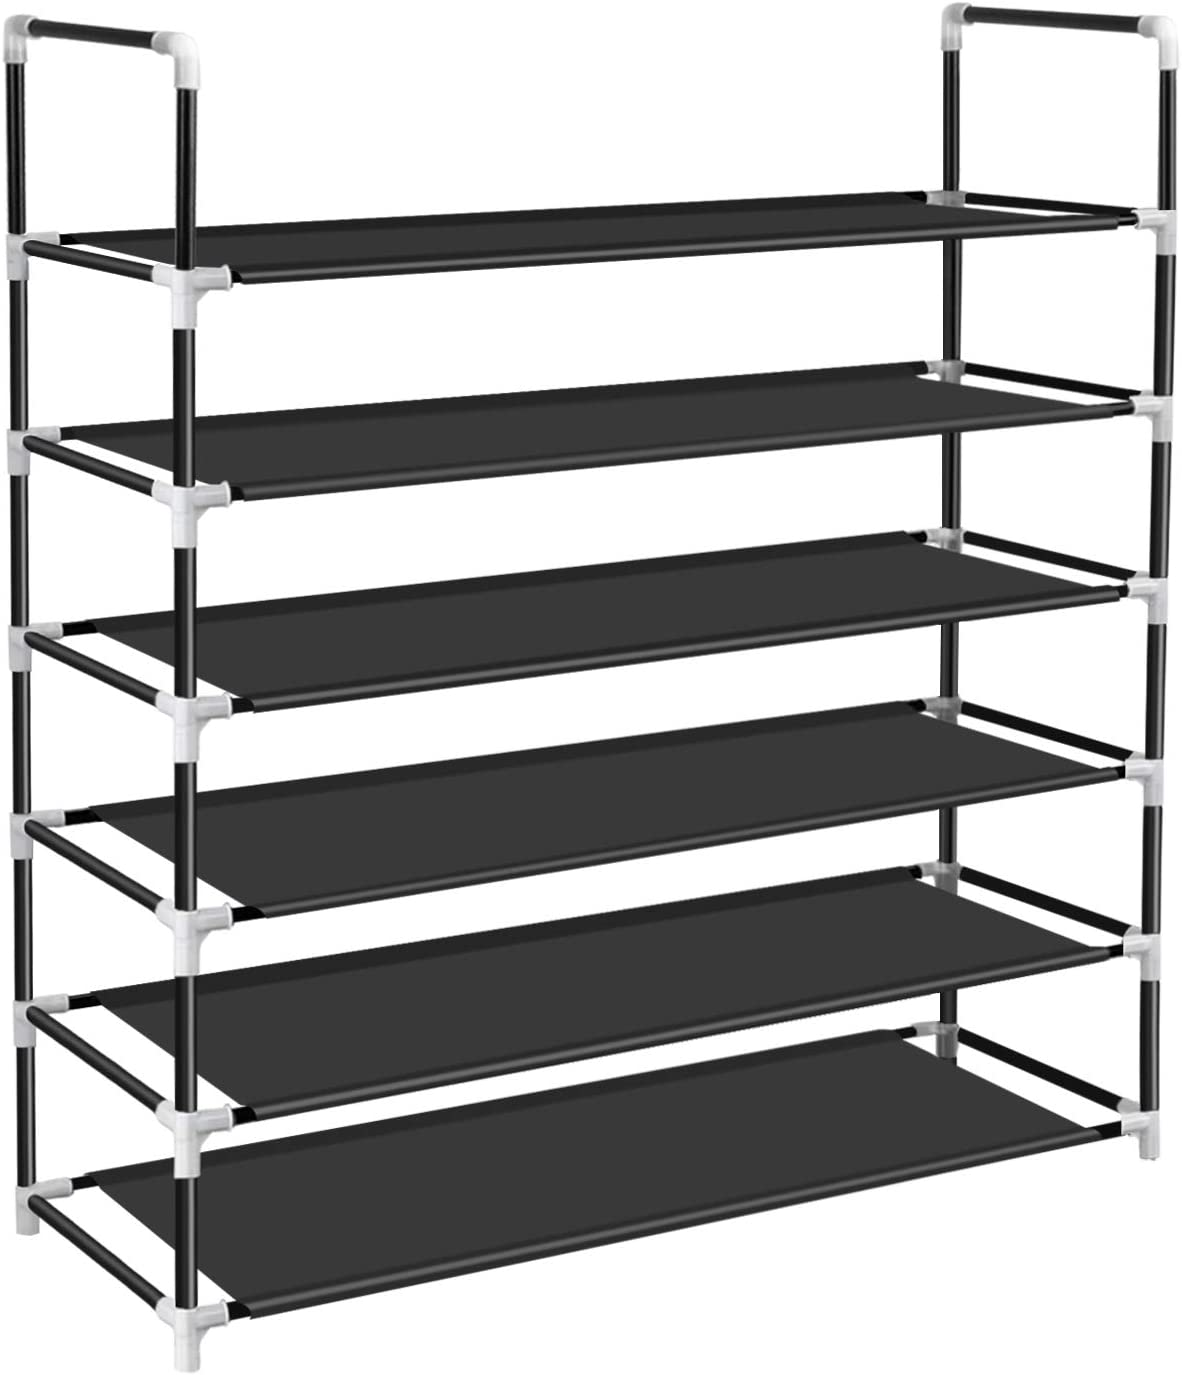 ERONE Shoe Rack Organizer 6 Tier,Shoe Storage for Closets Holds 24 Pairs,Non-Woven Fabric Metal Sturdy Shoe Shelf Tower Cabinet for Entryway